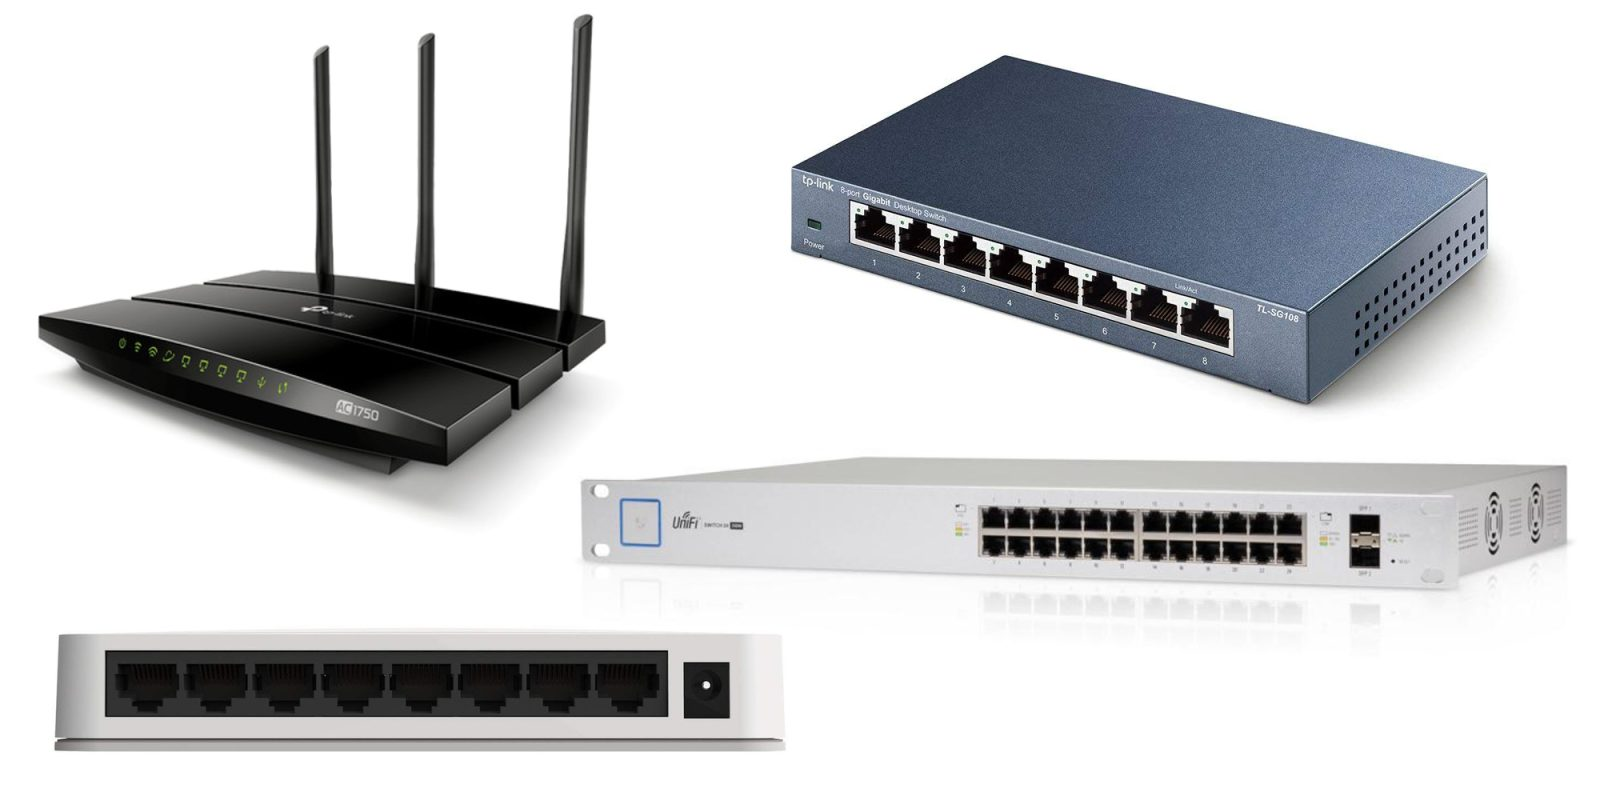 Home Networking Deals: TP-Link 8-Port Switch $18 (40% Off